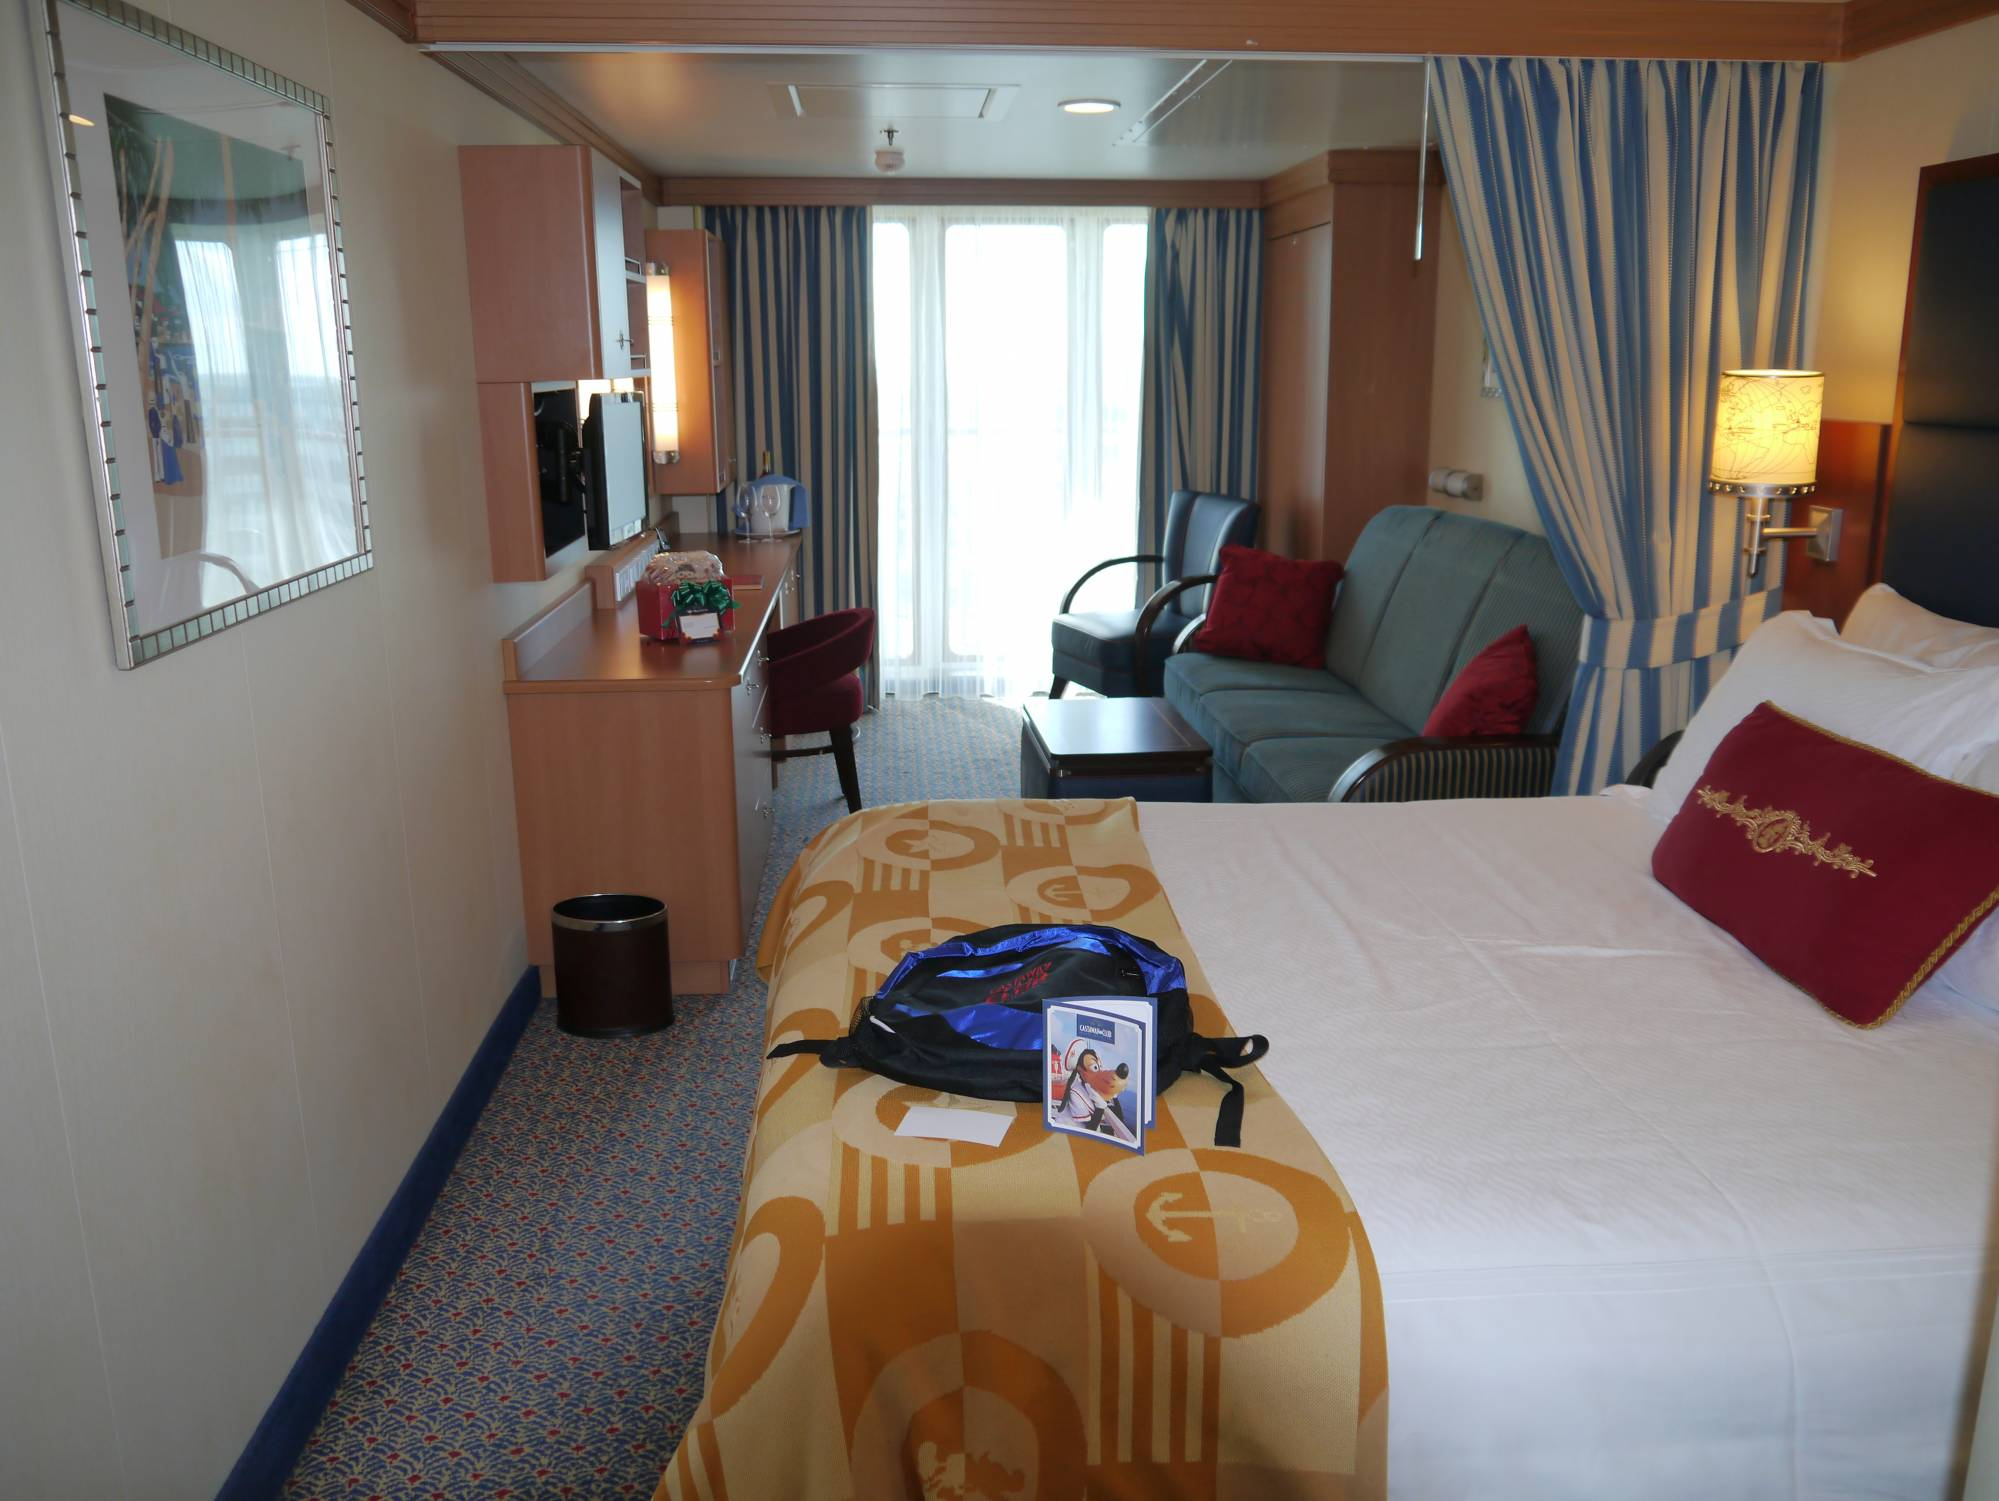 Make the most of your Disney Cruise with tips from Cheryl Pendry | PassPorter.com